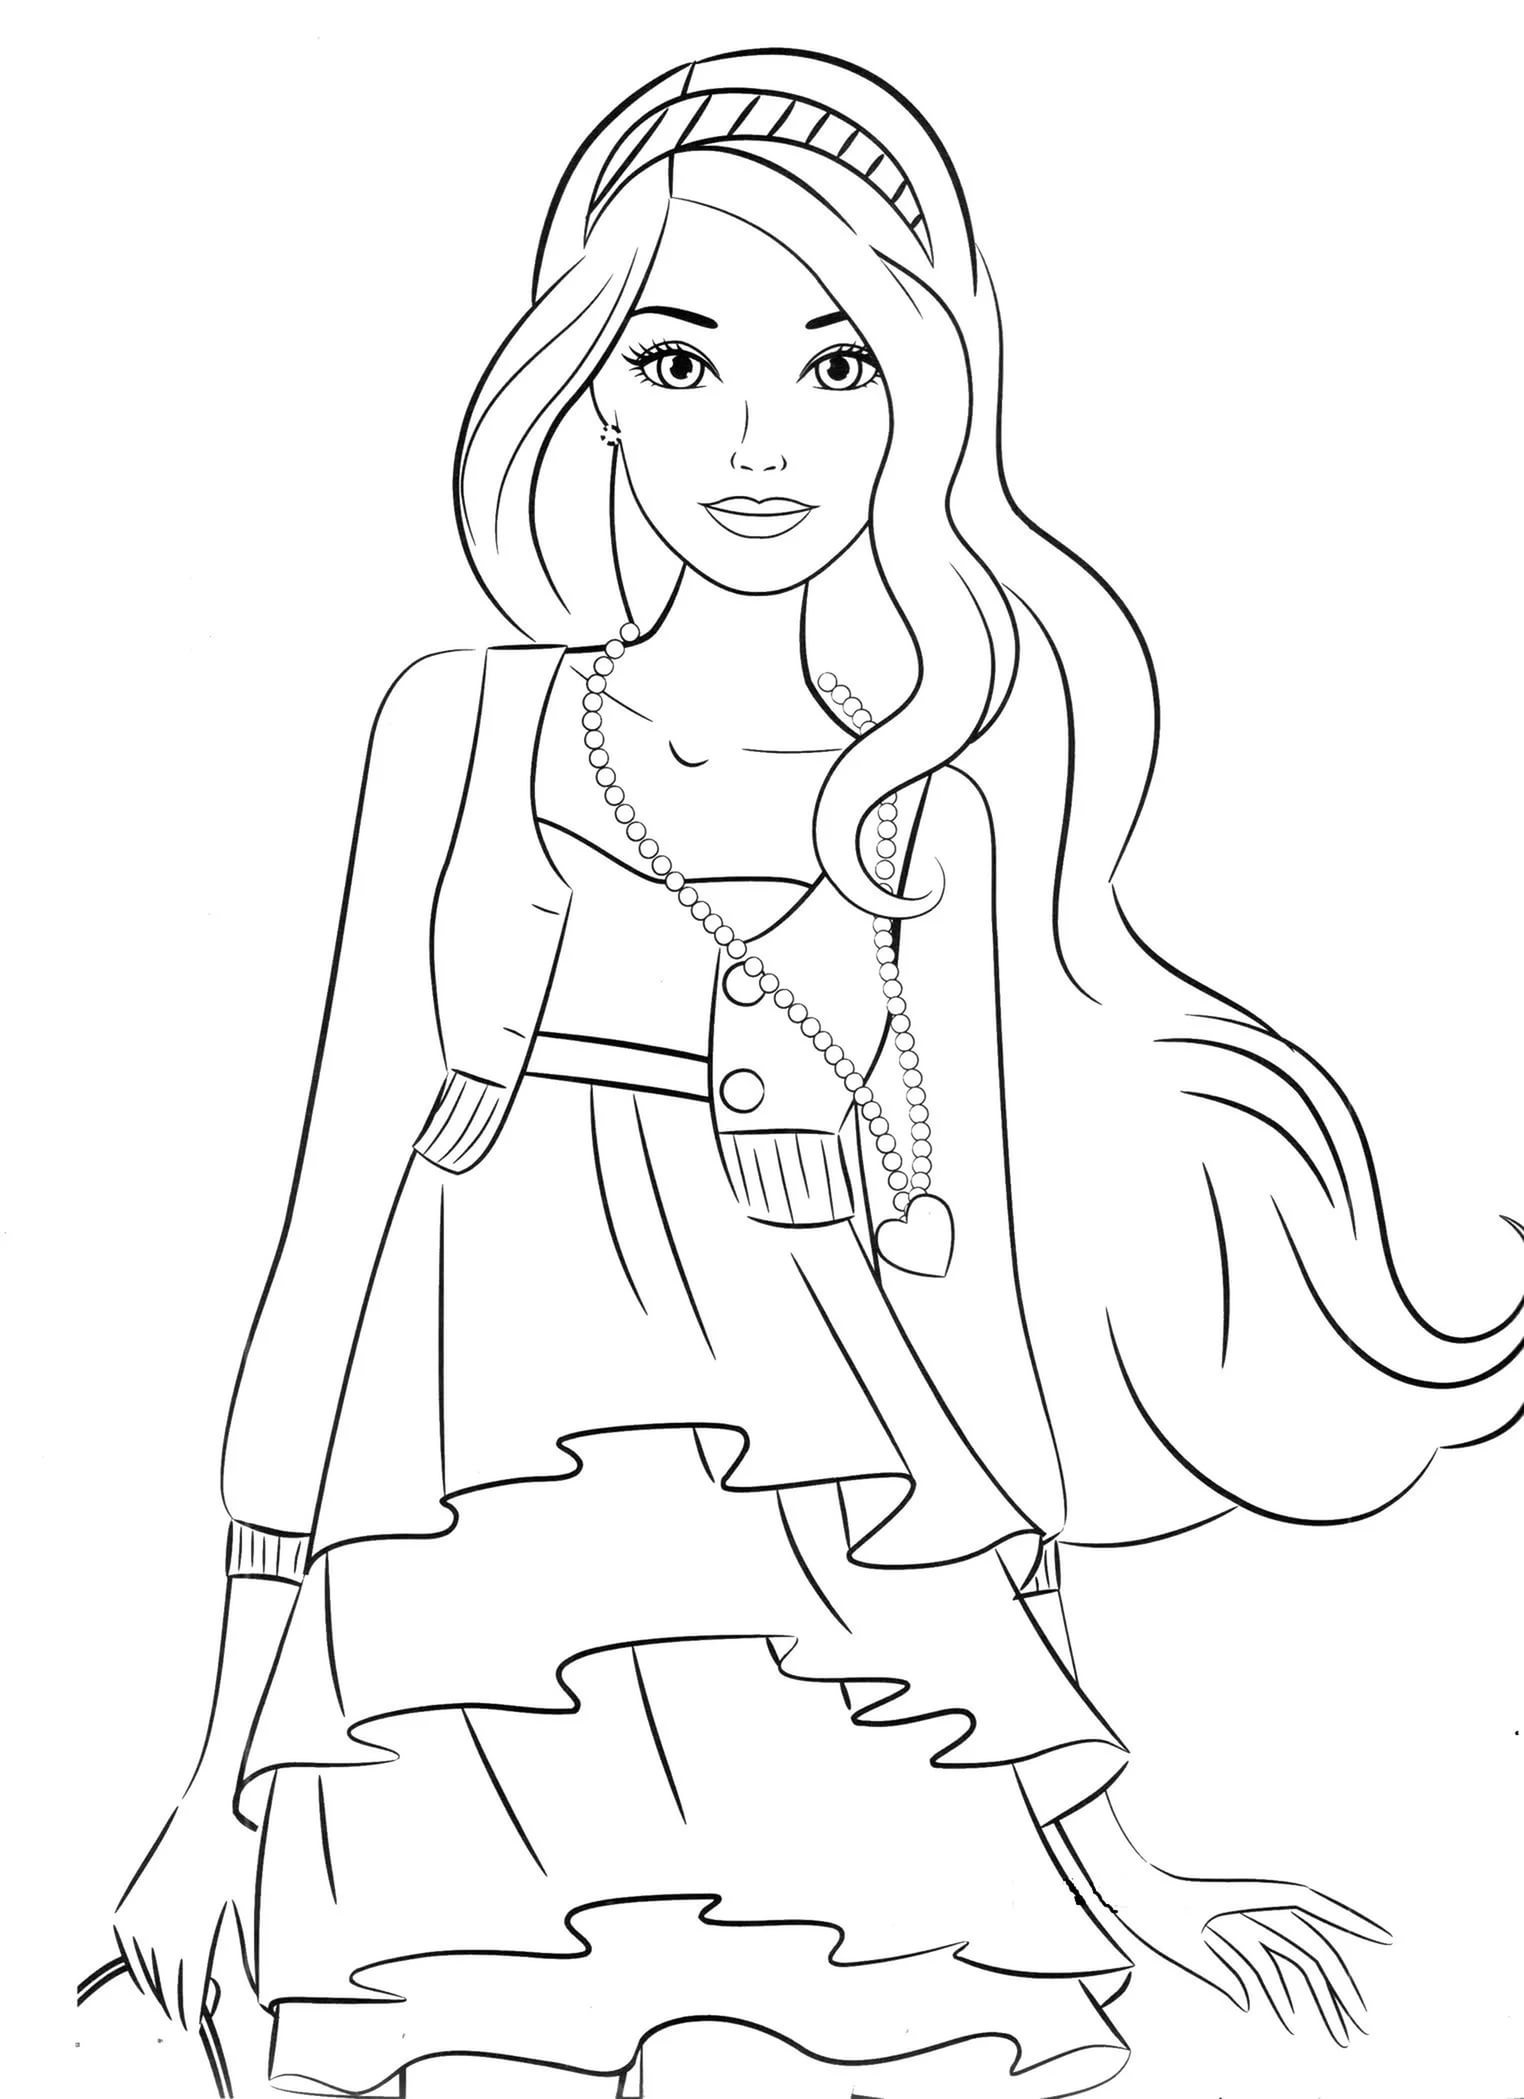 coloring pages for 9 year olds coloring pages for 9 year olds free download on clipartmag olds for 9 coloring year pages